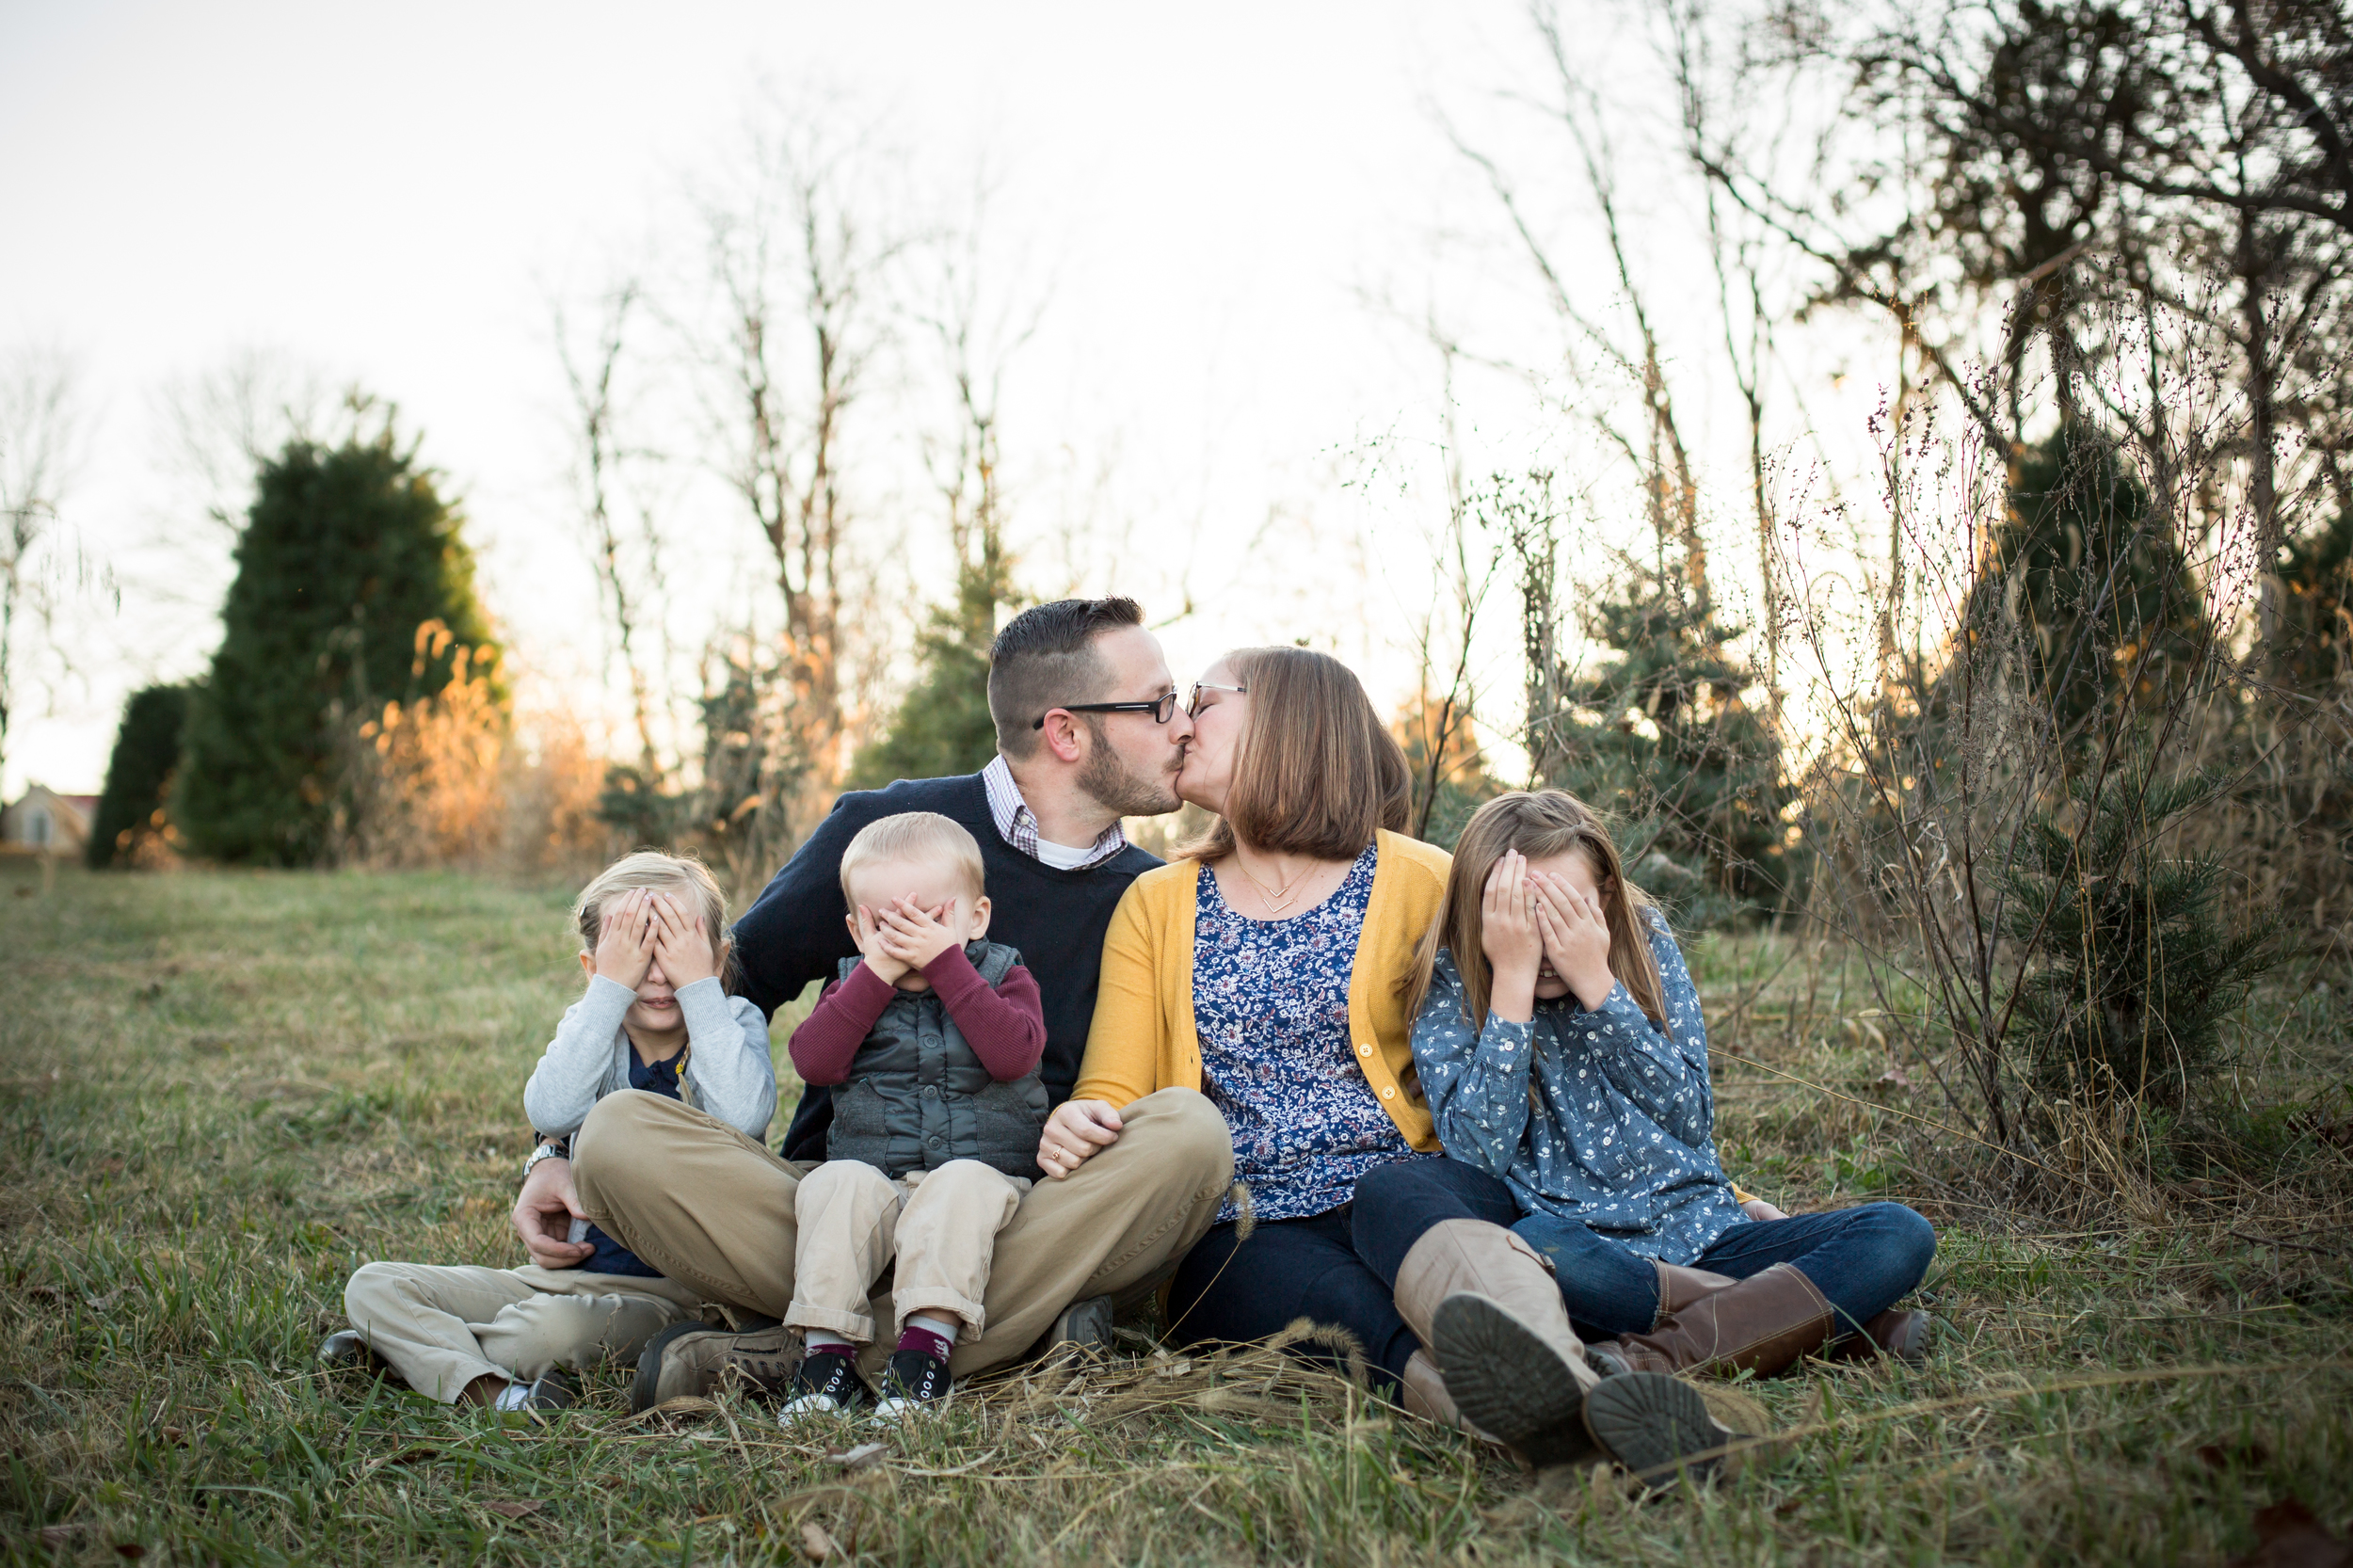 We did a mini session for Christmas card photos and these were my favorite cards ever!! Jenny is fabulous, and handled our silly family (including our two year old) like a champ.   Lisa O.